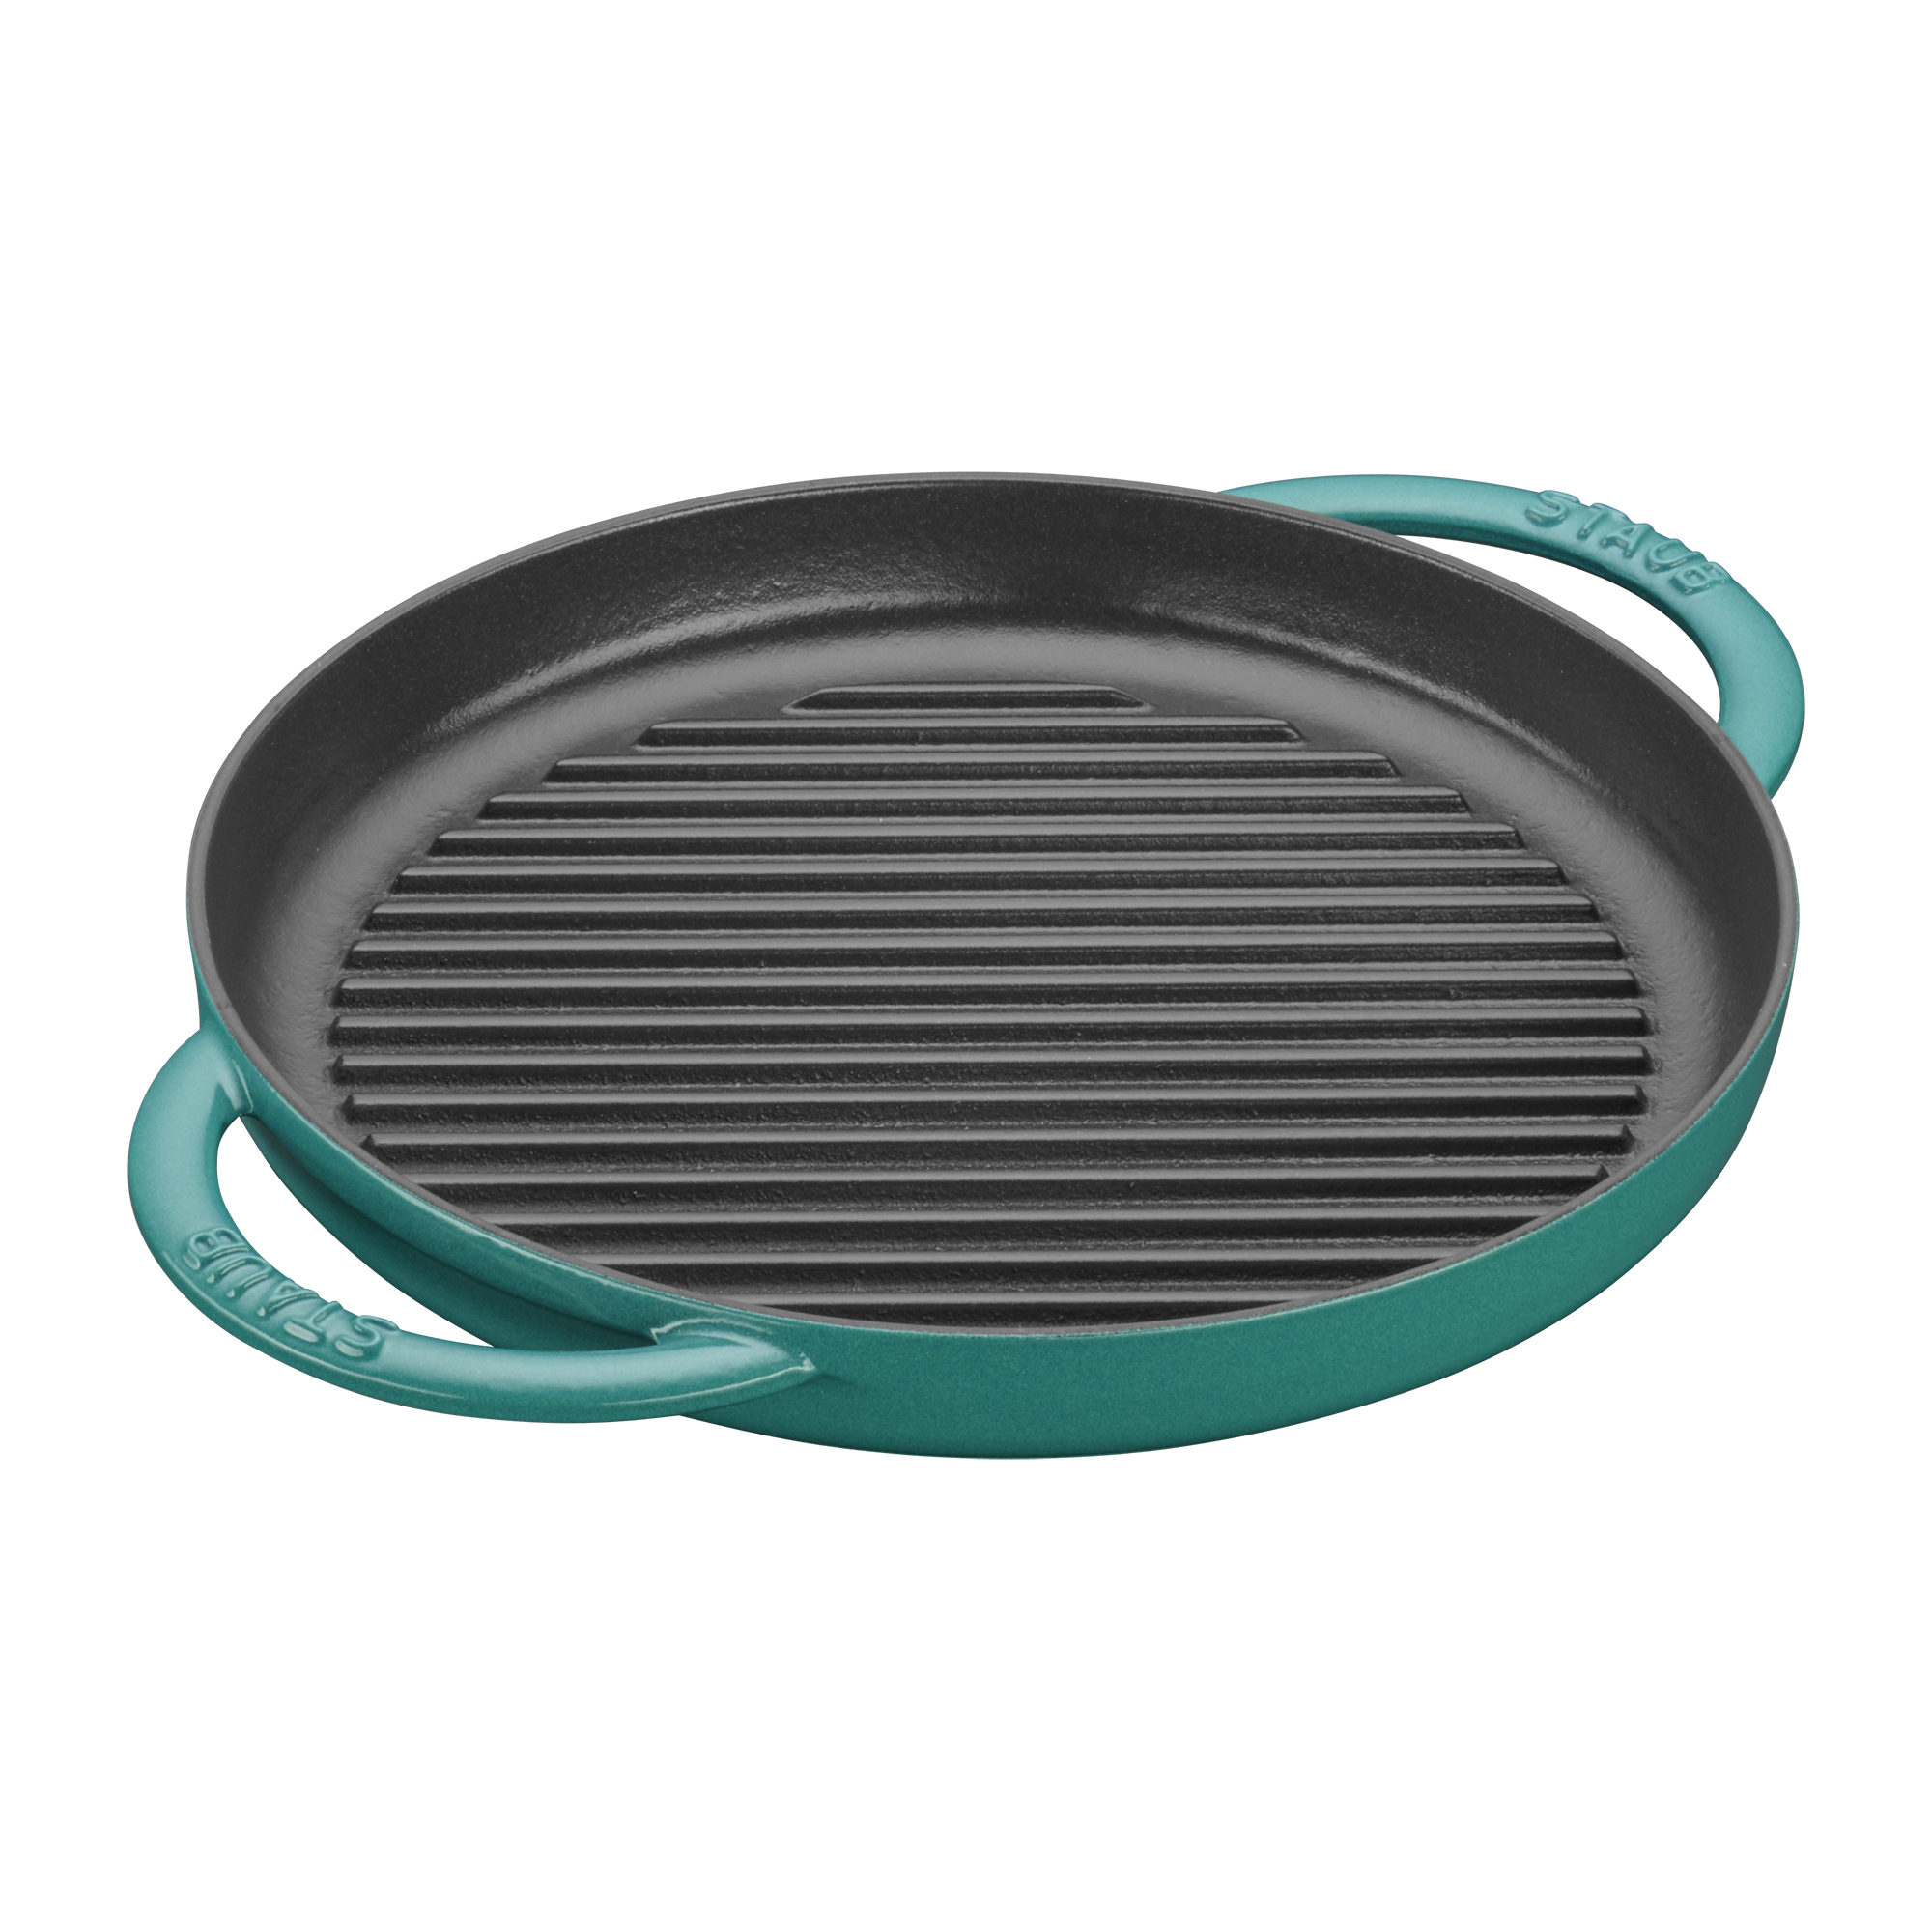 Staub Grill Pan Review